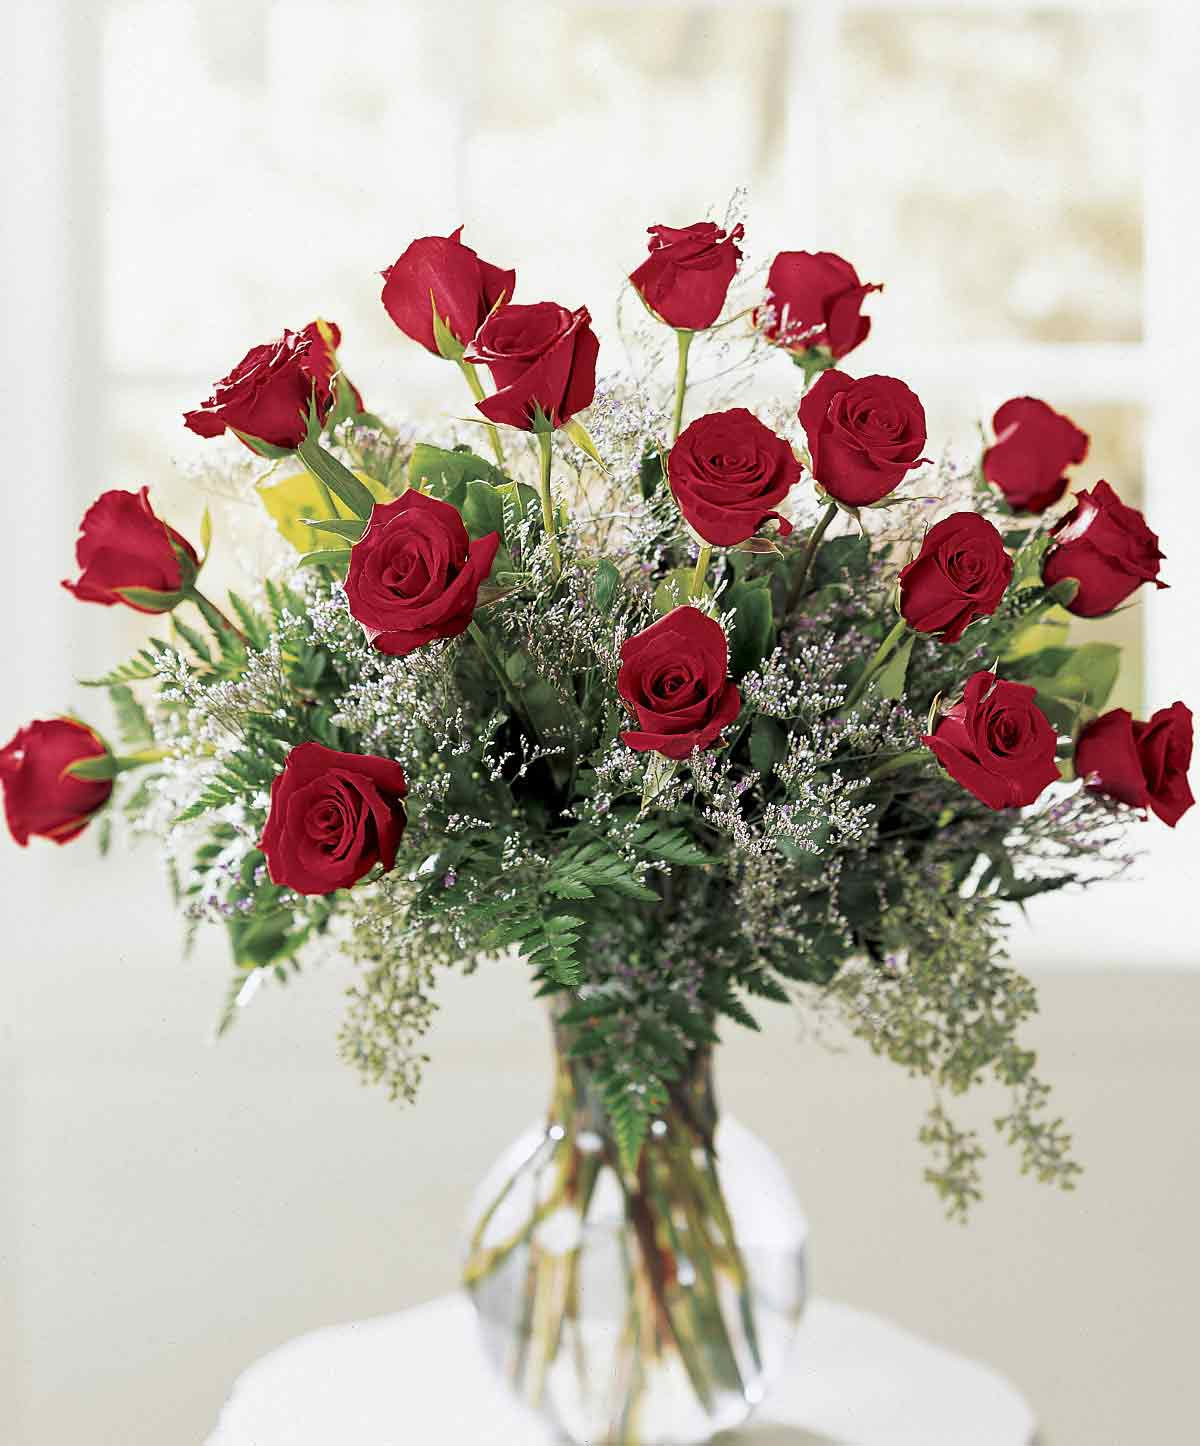 Valentines roses day rose flowers love